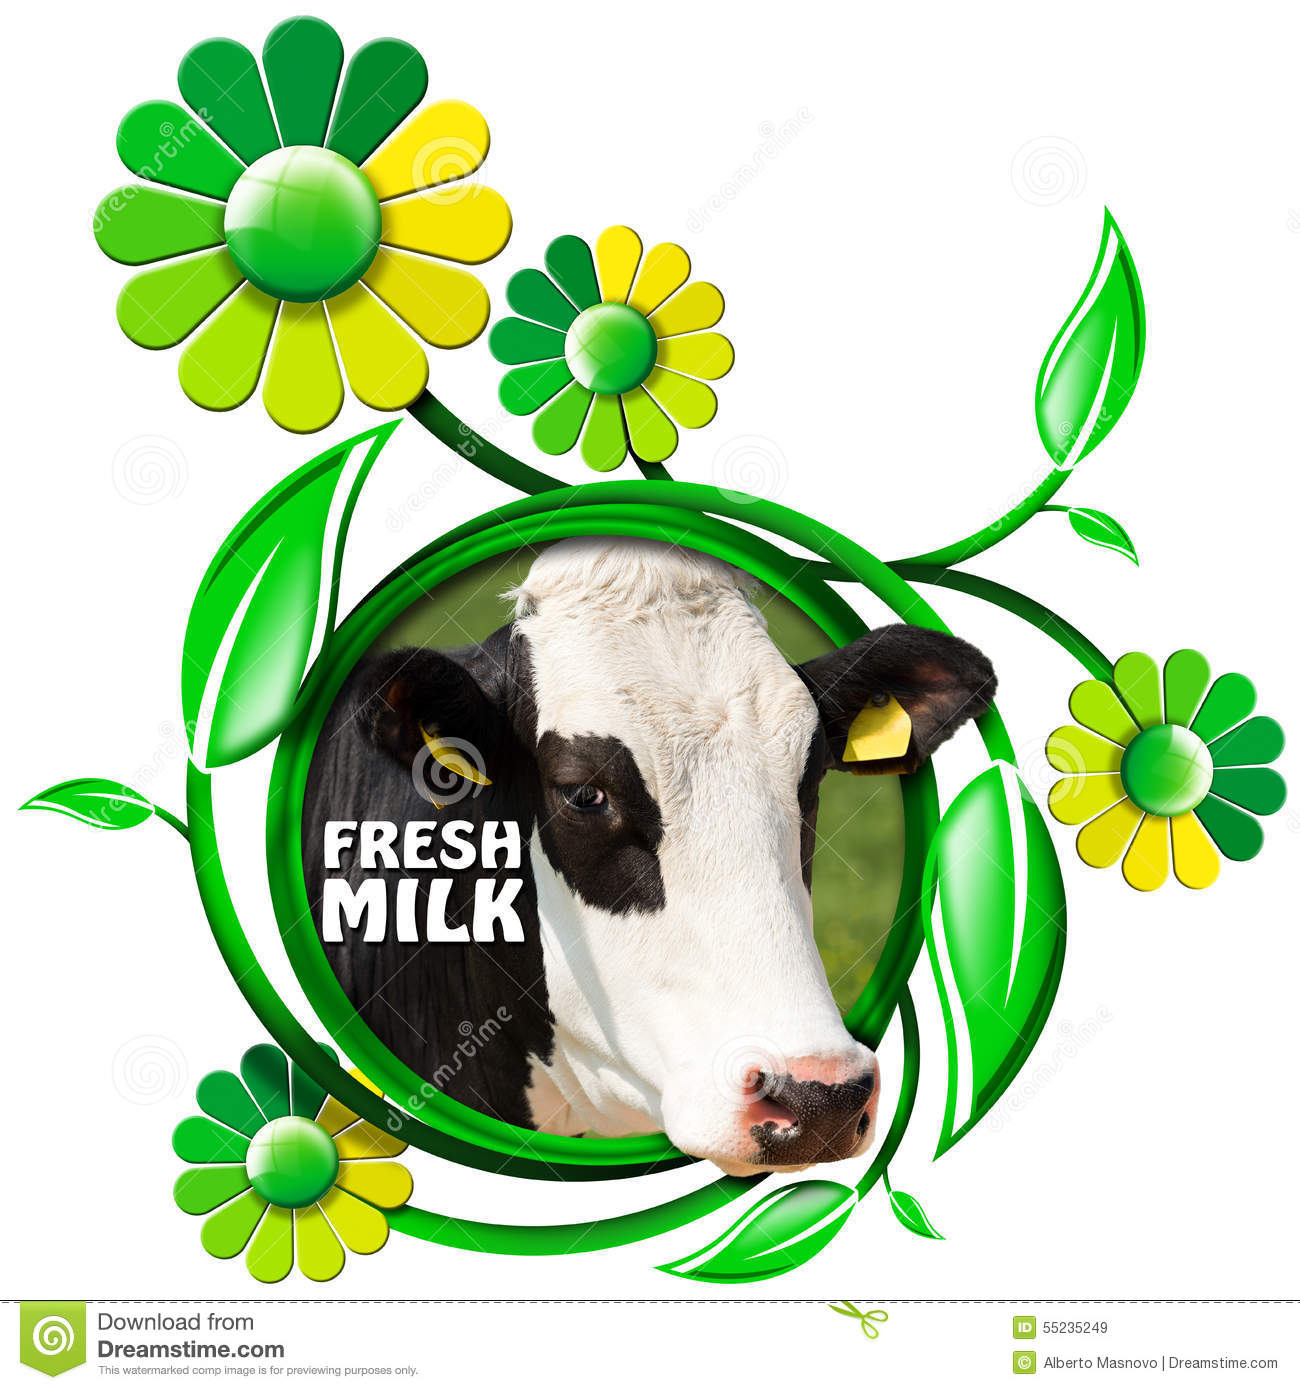 Fresh milk symbol with cow and flowers stock illustration fresh milk symbol with cow and flowers buycottarizona